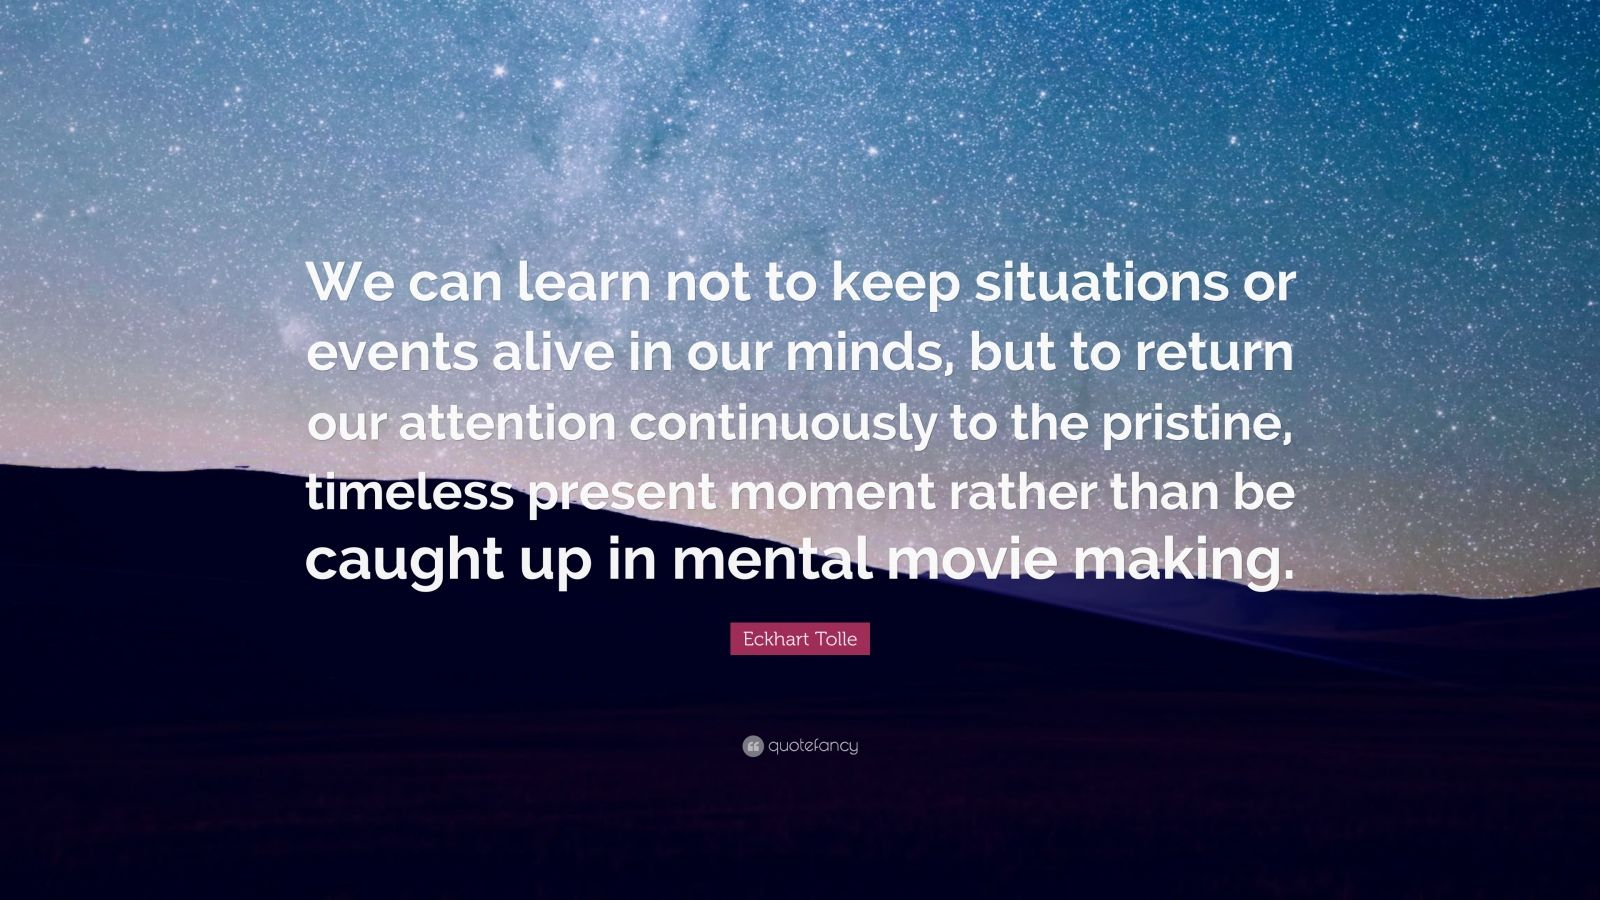 """Eckhart Tolle Quote: """"We can learn not to keep situations or events alive in our minds, but to return our attention continuously to the pristine, timeless present moment rather than be caught up in mental movie making."""""""